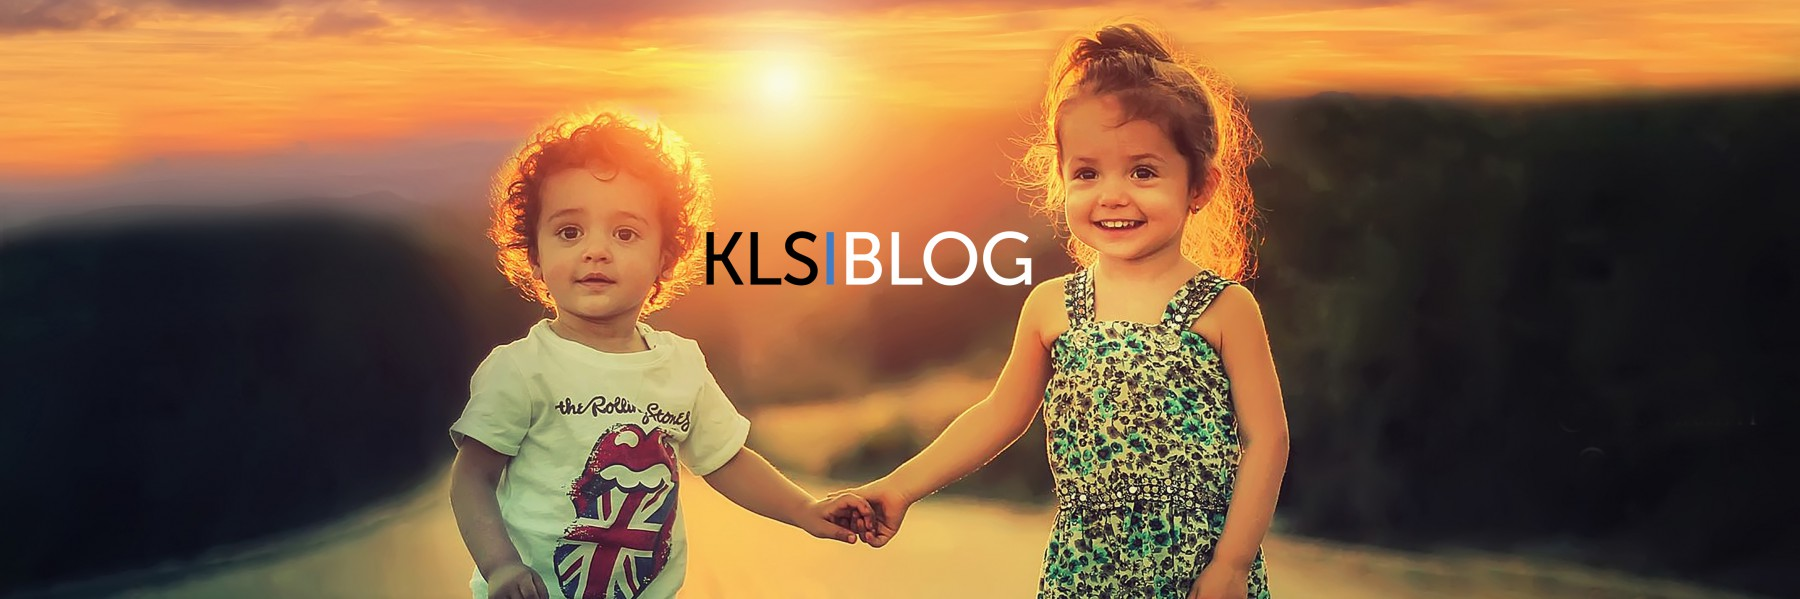 KIDS LIVE SAFE: A Family Safety Blog